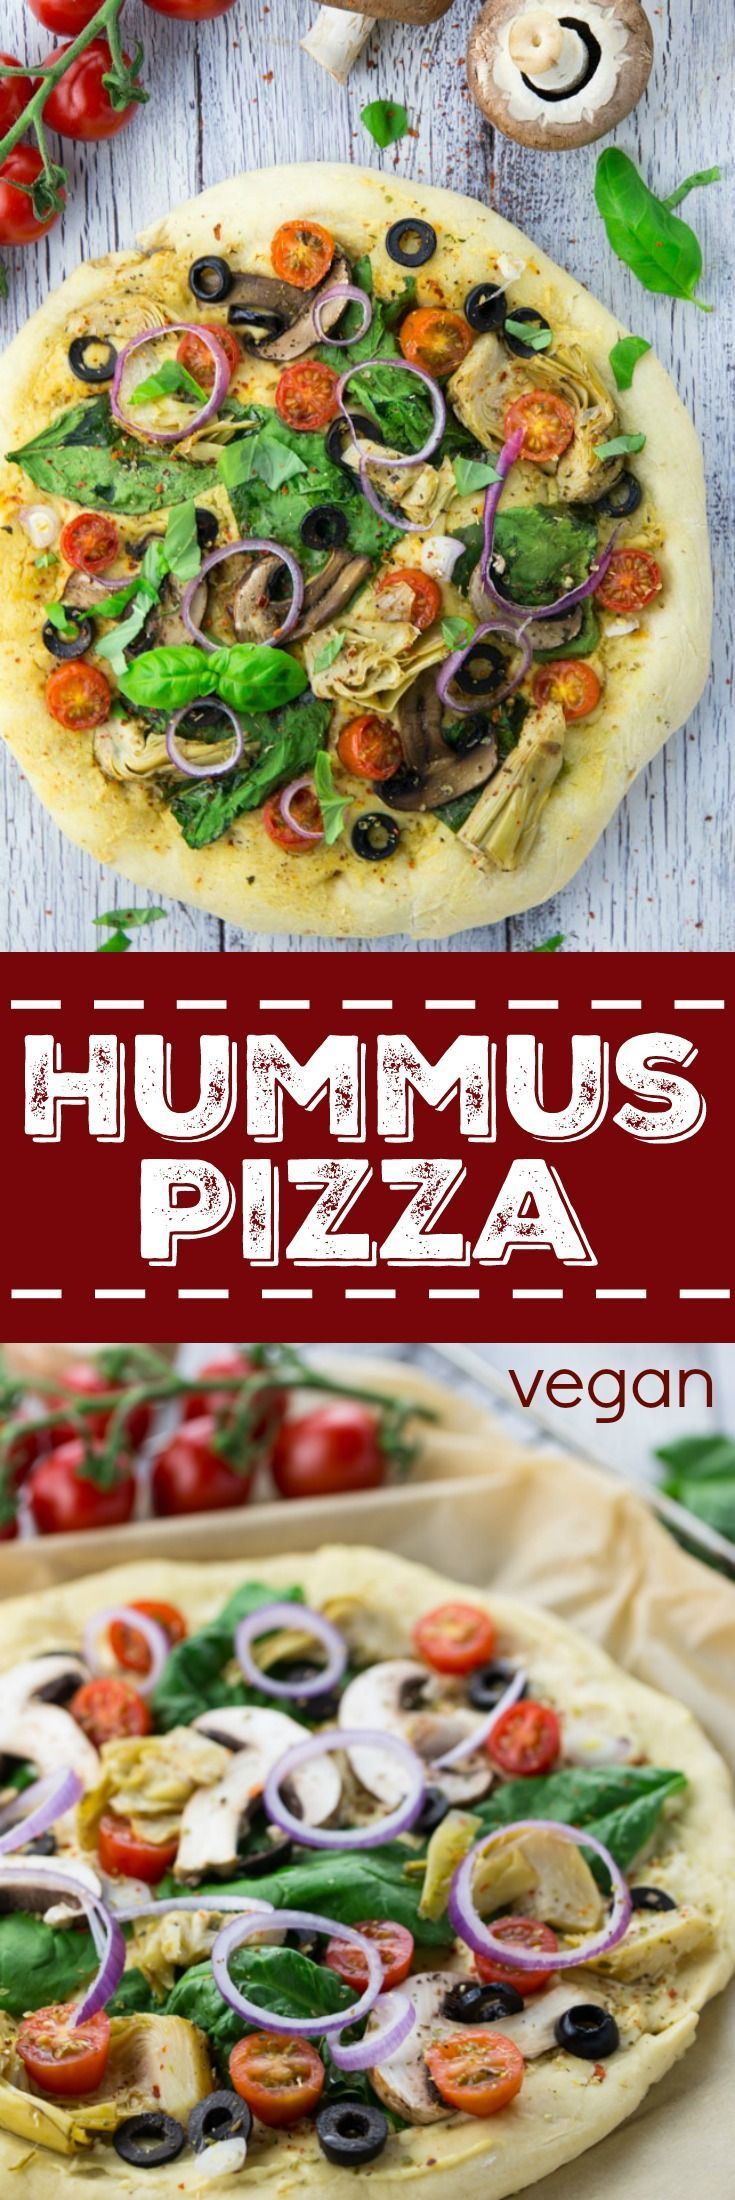 I love hummus and I love pizza. So I thought why not just try hummus pizza?! Thi…